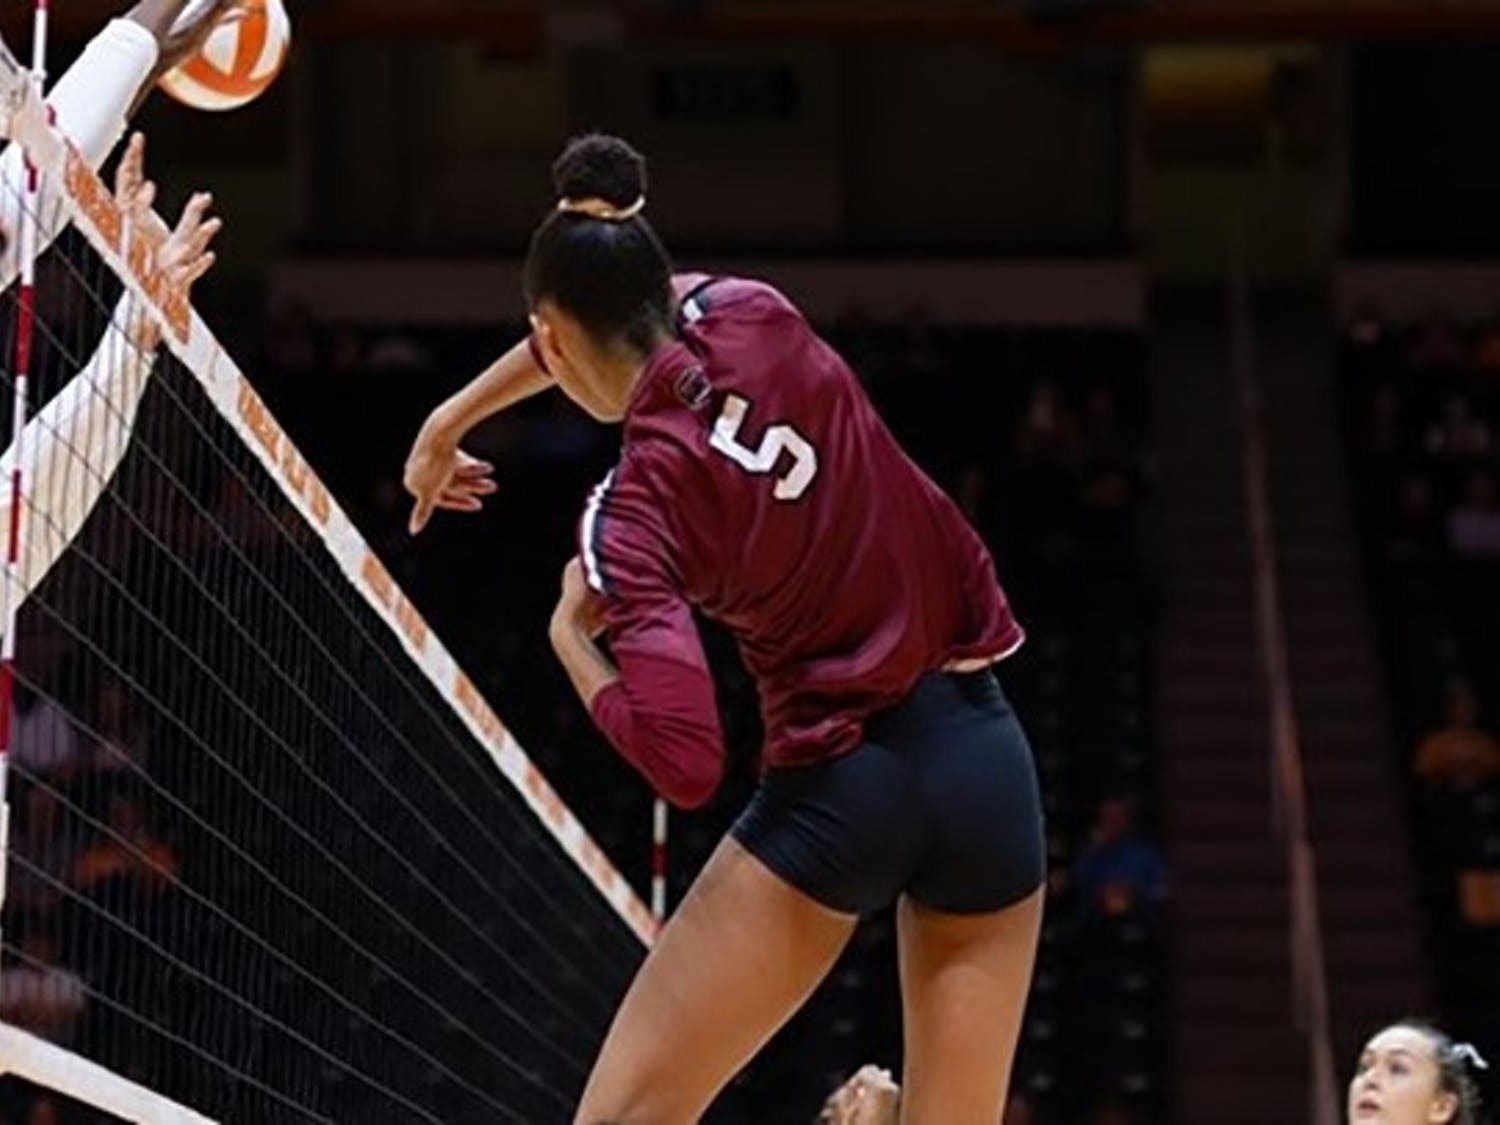 Graduate student outside hitter, Kyla Manning, goes up for a hit during the game against Texas A&M. South Carolina lost 3-1.